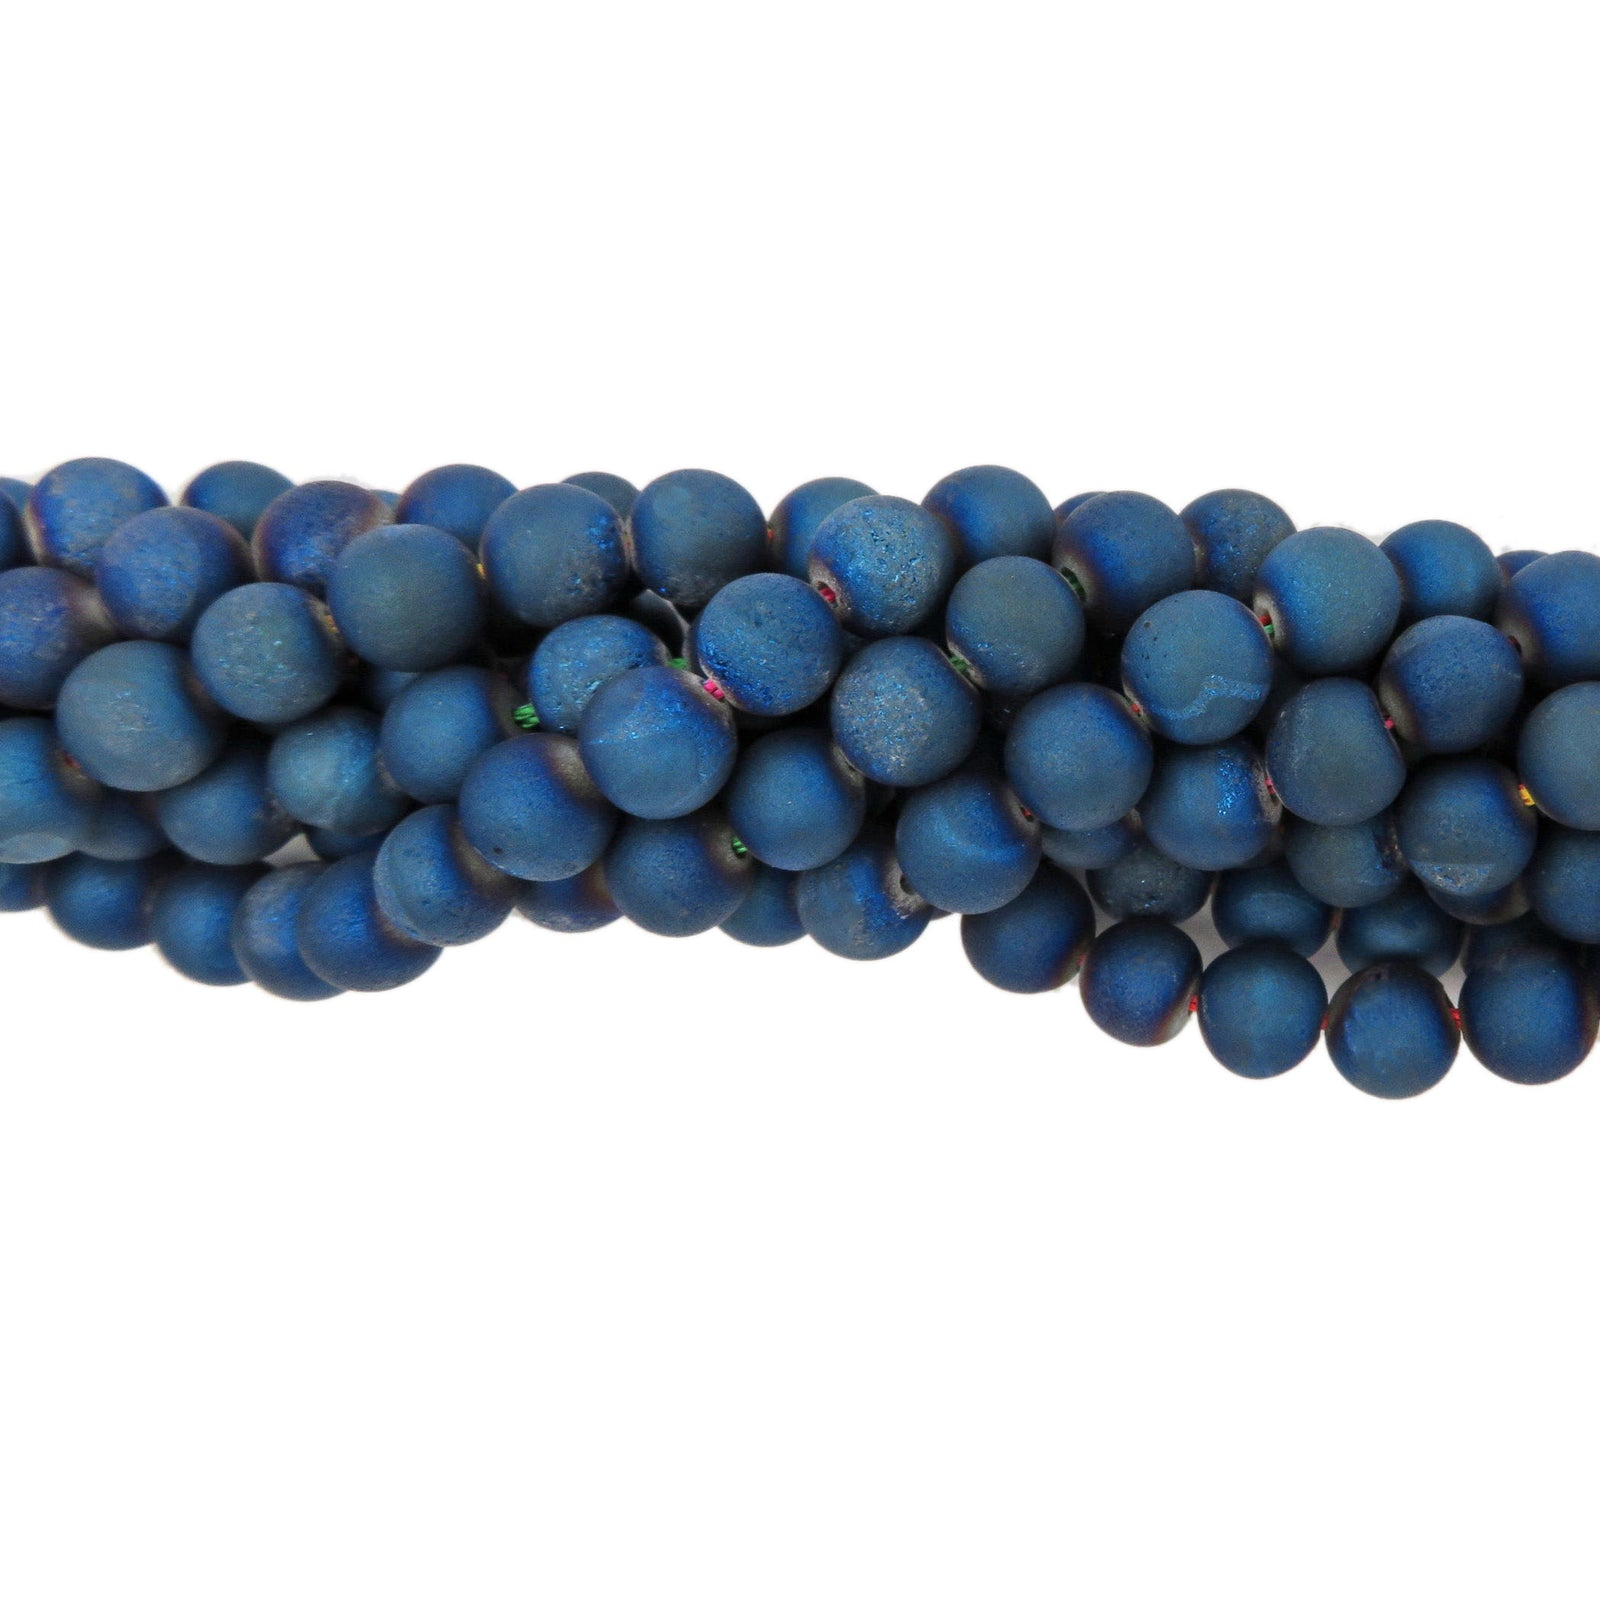 Blue Druzy Titanium Quartz Beads- 8mm Round Blue Druzy Quartz Beads- 1 STRAND (S41B21-03)